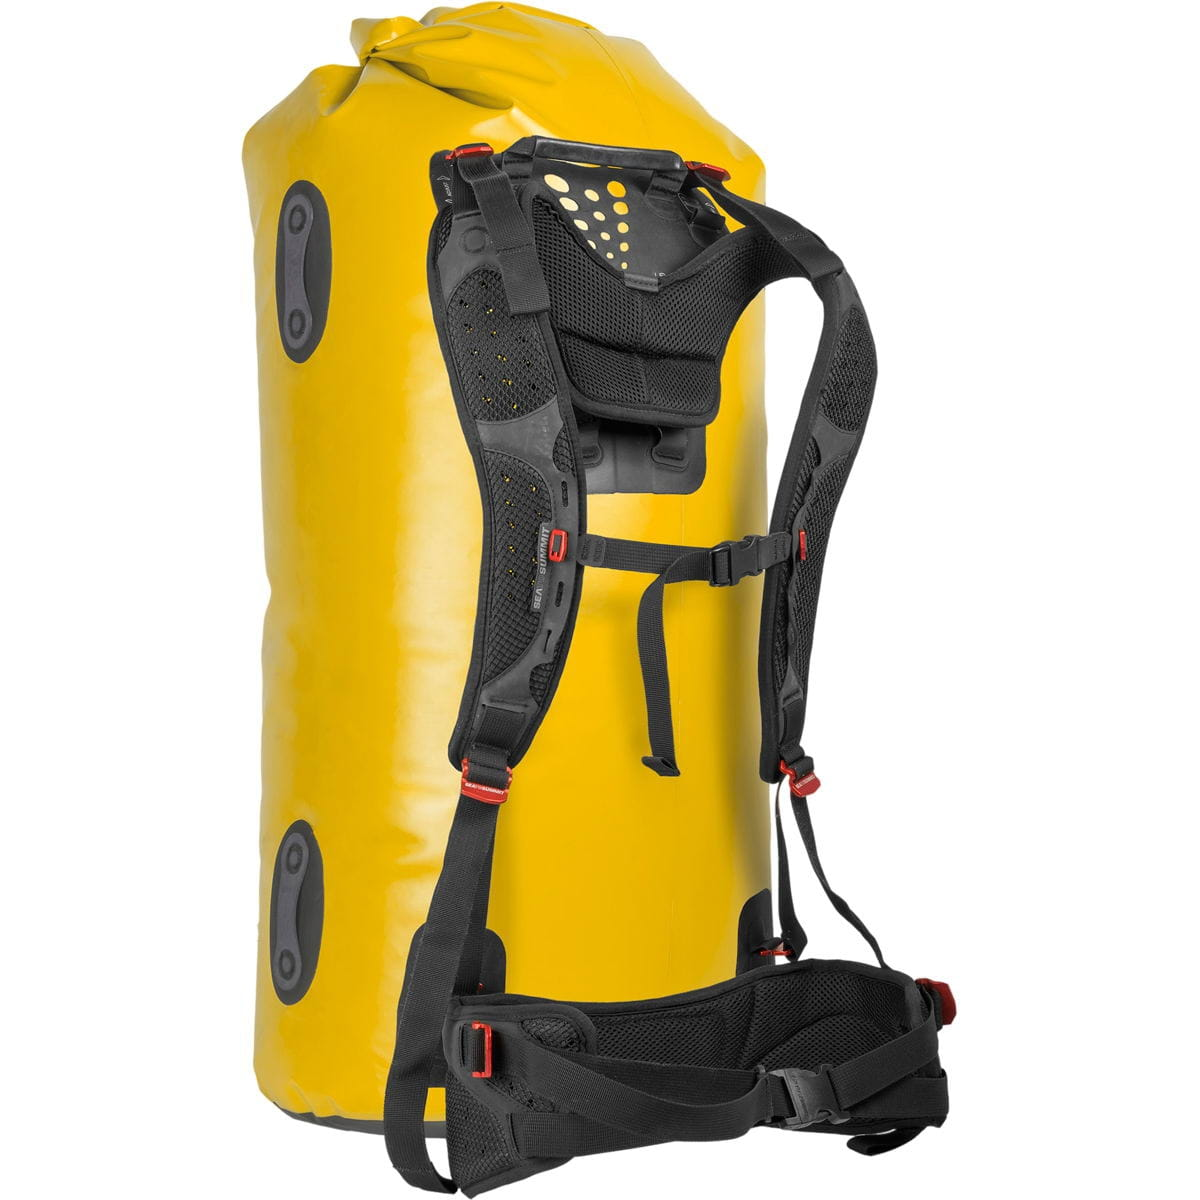 sea to summit hydraulic dry pack 120 liter packsack. Black Bedroom Furniture Sets. Home Design Ideas